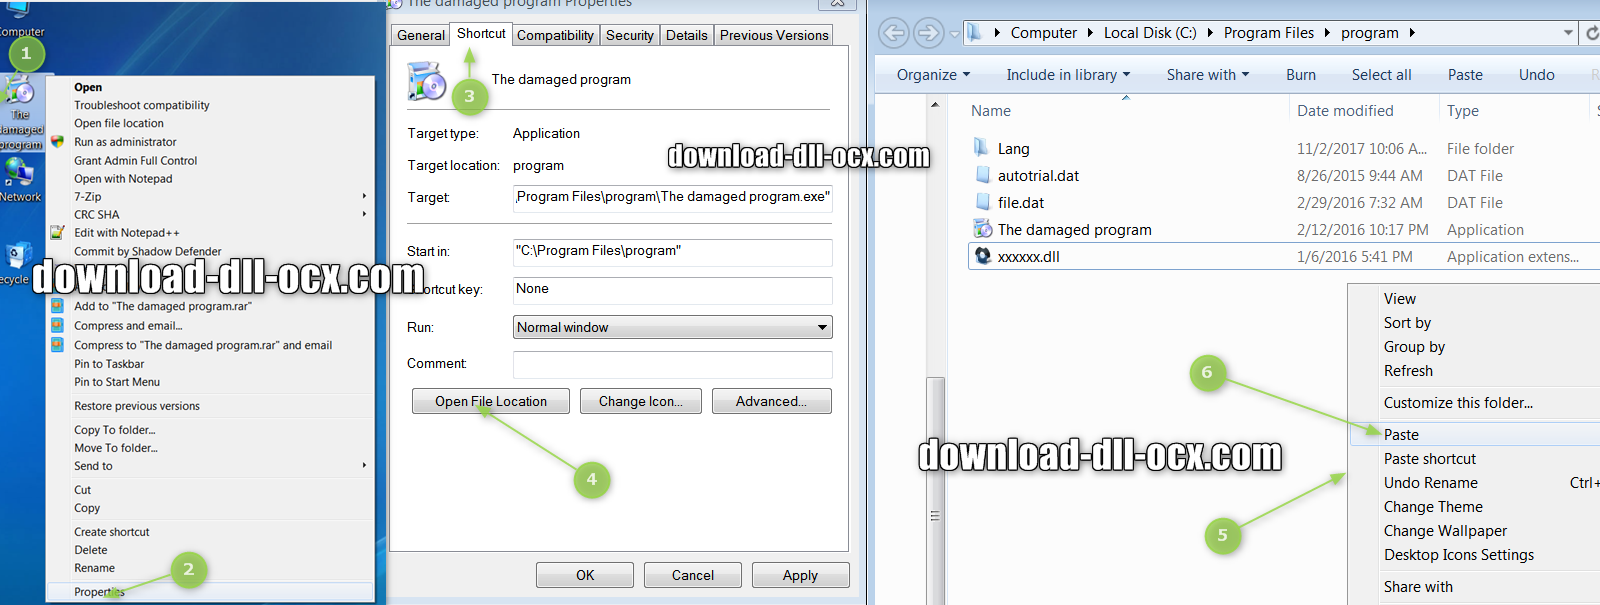 how to install 2dEngCom.dll file? for fix missing